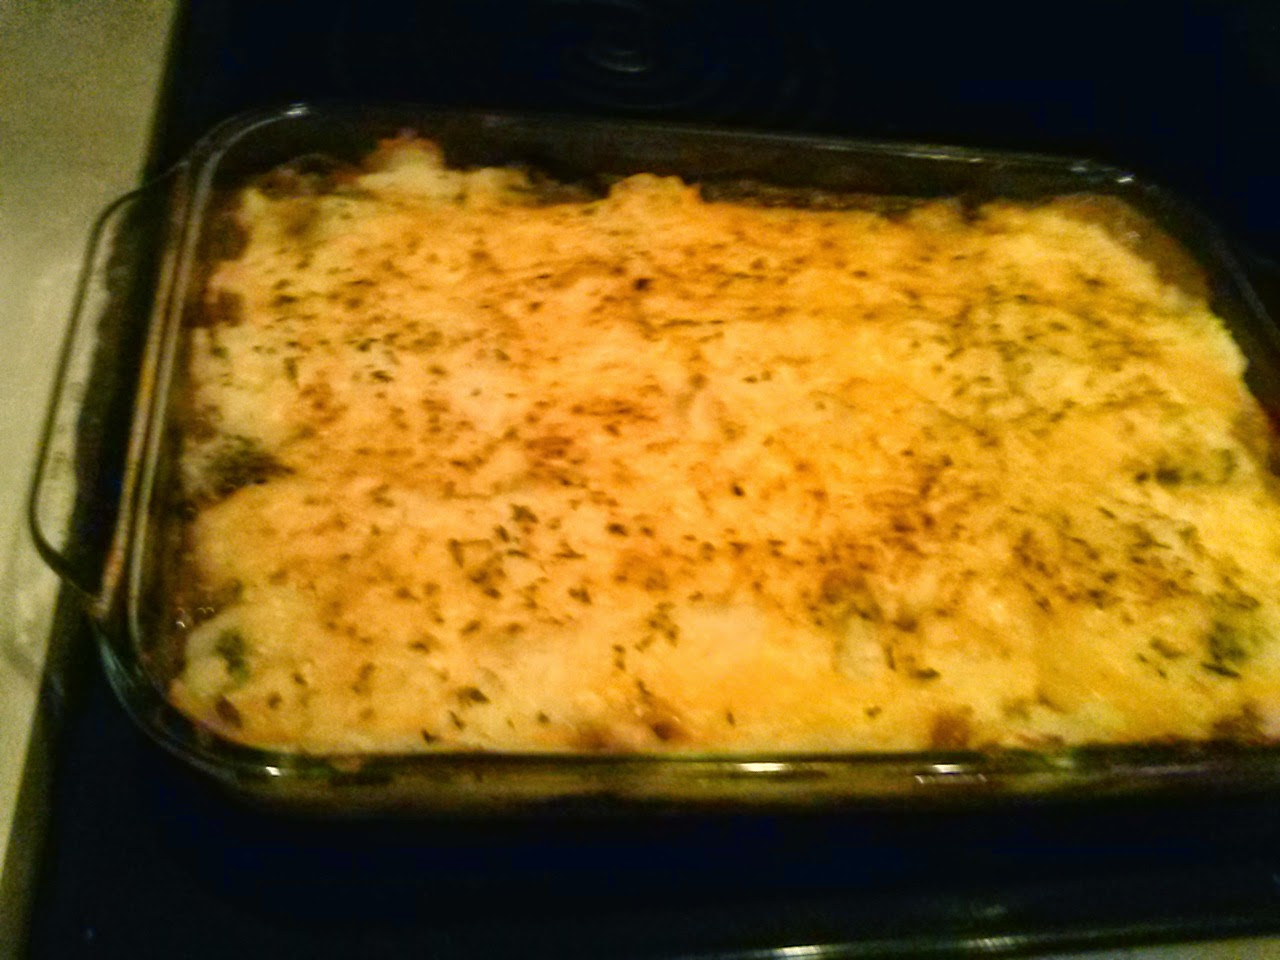 Homemade shepherds pie, baked, creamy goodness